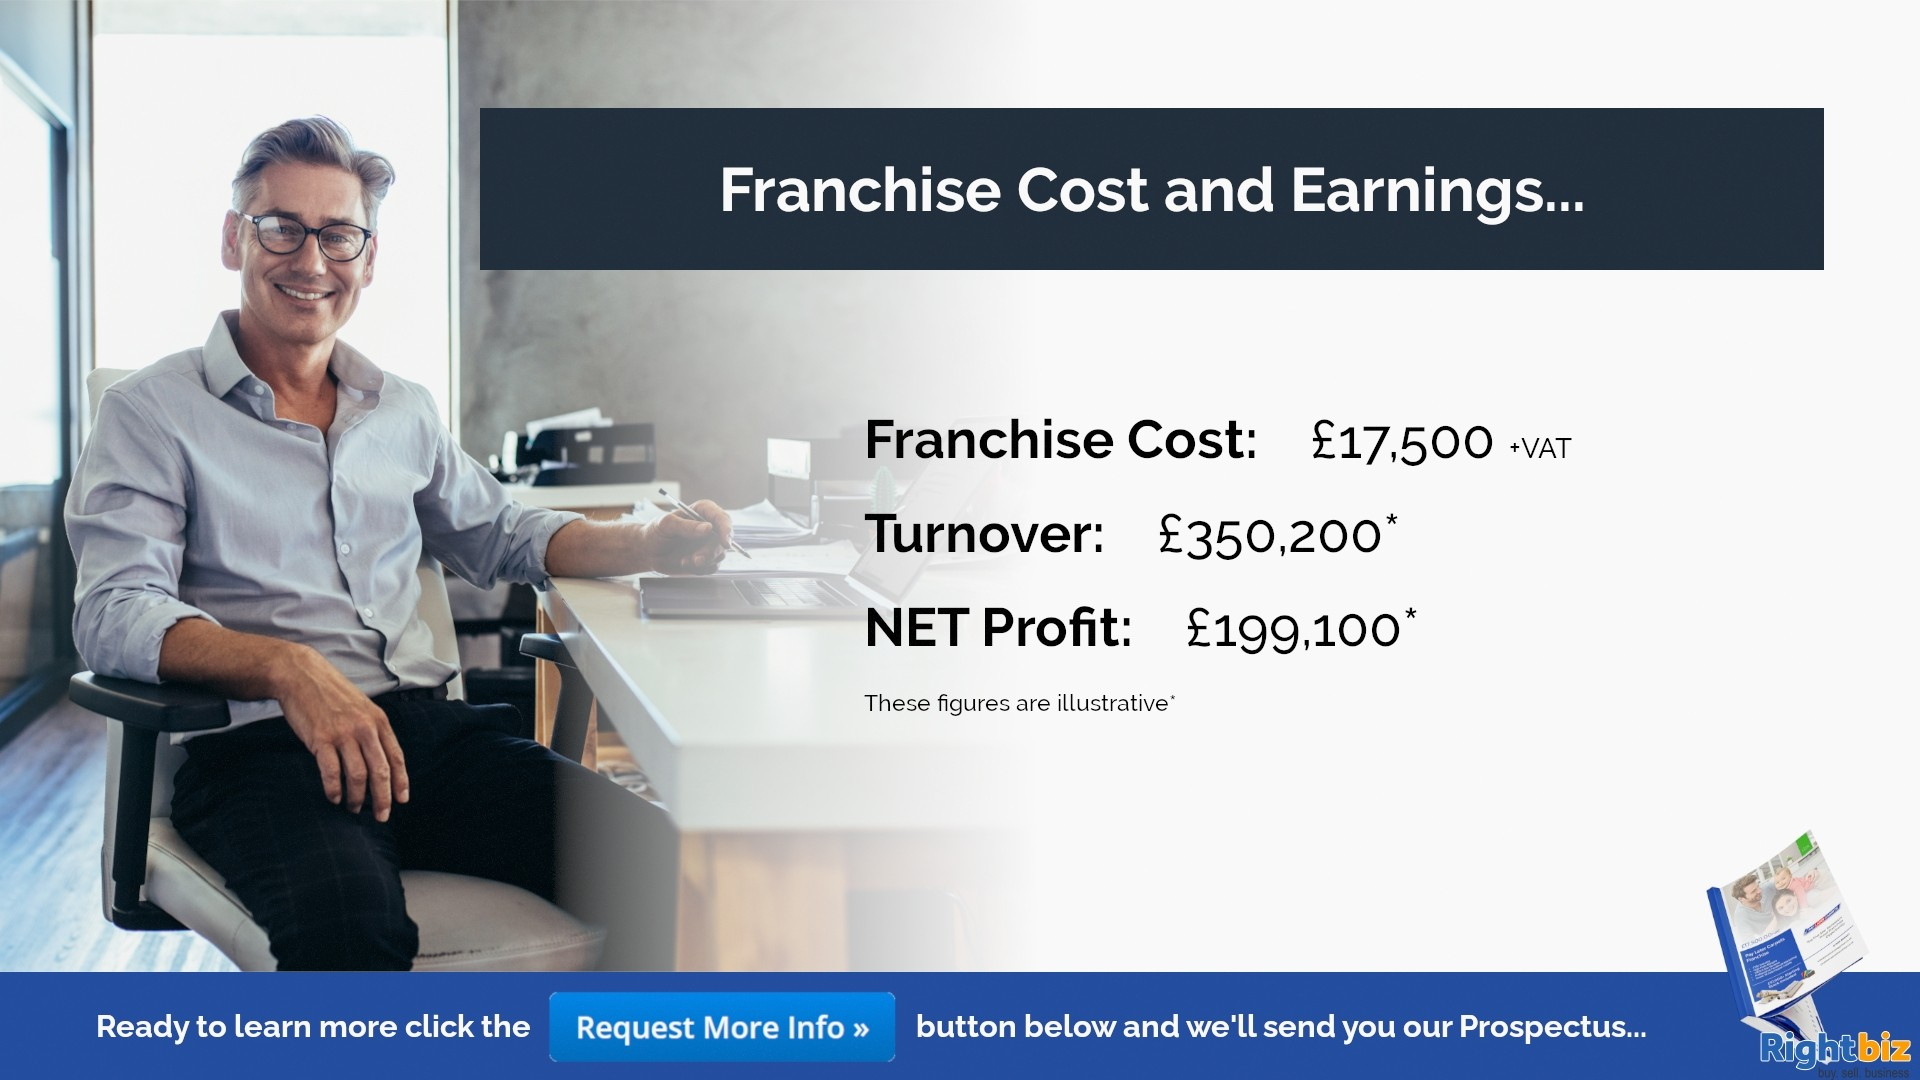 Pay Later Carpets Franchise St Asaph Our First Franchisee Made £11,000+ Profit in Month One - Image 5